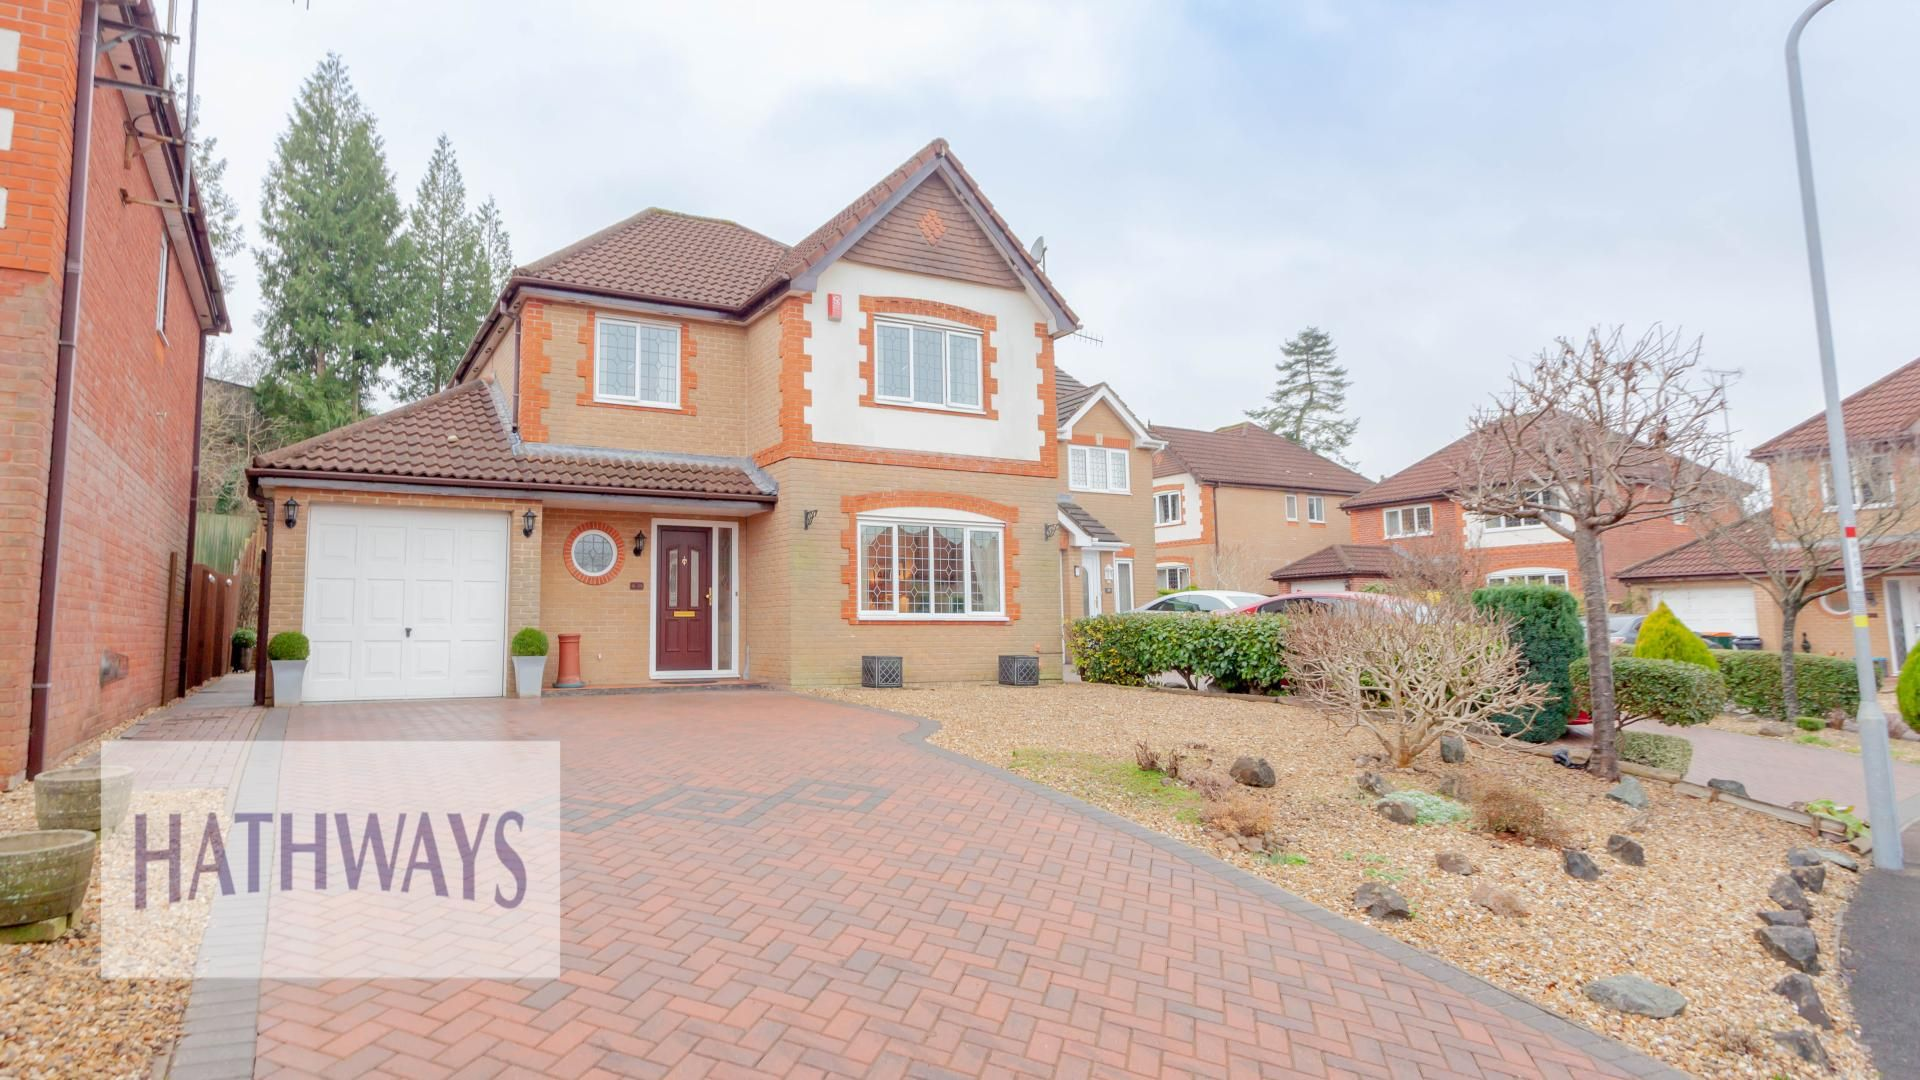 4 bed house for sale in Court Meadow, NP18